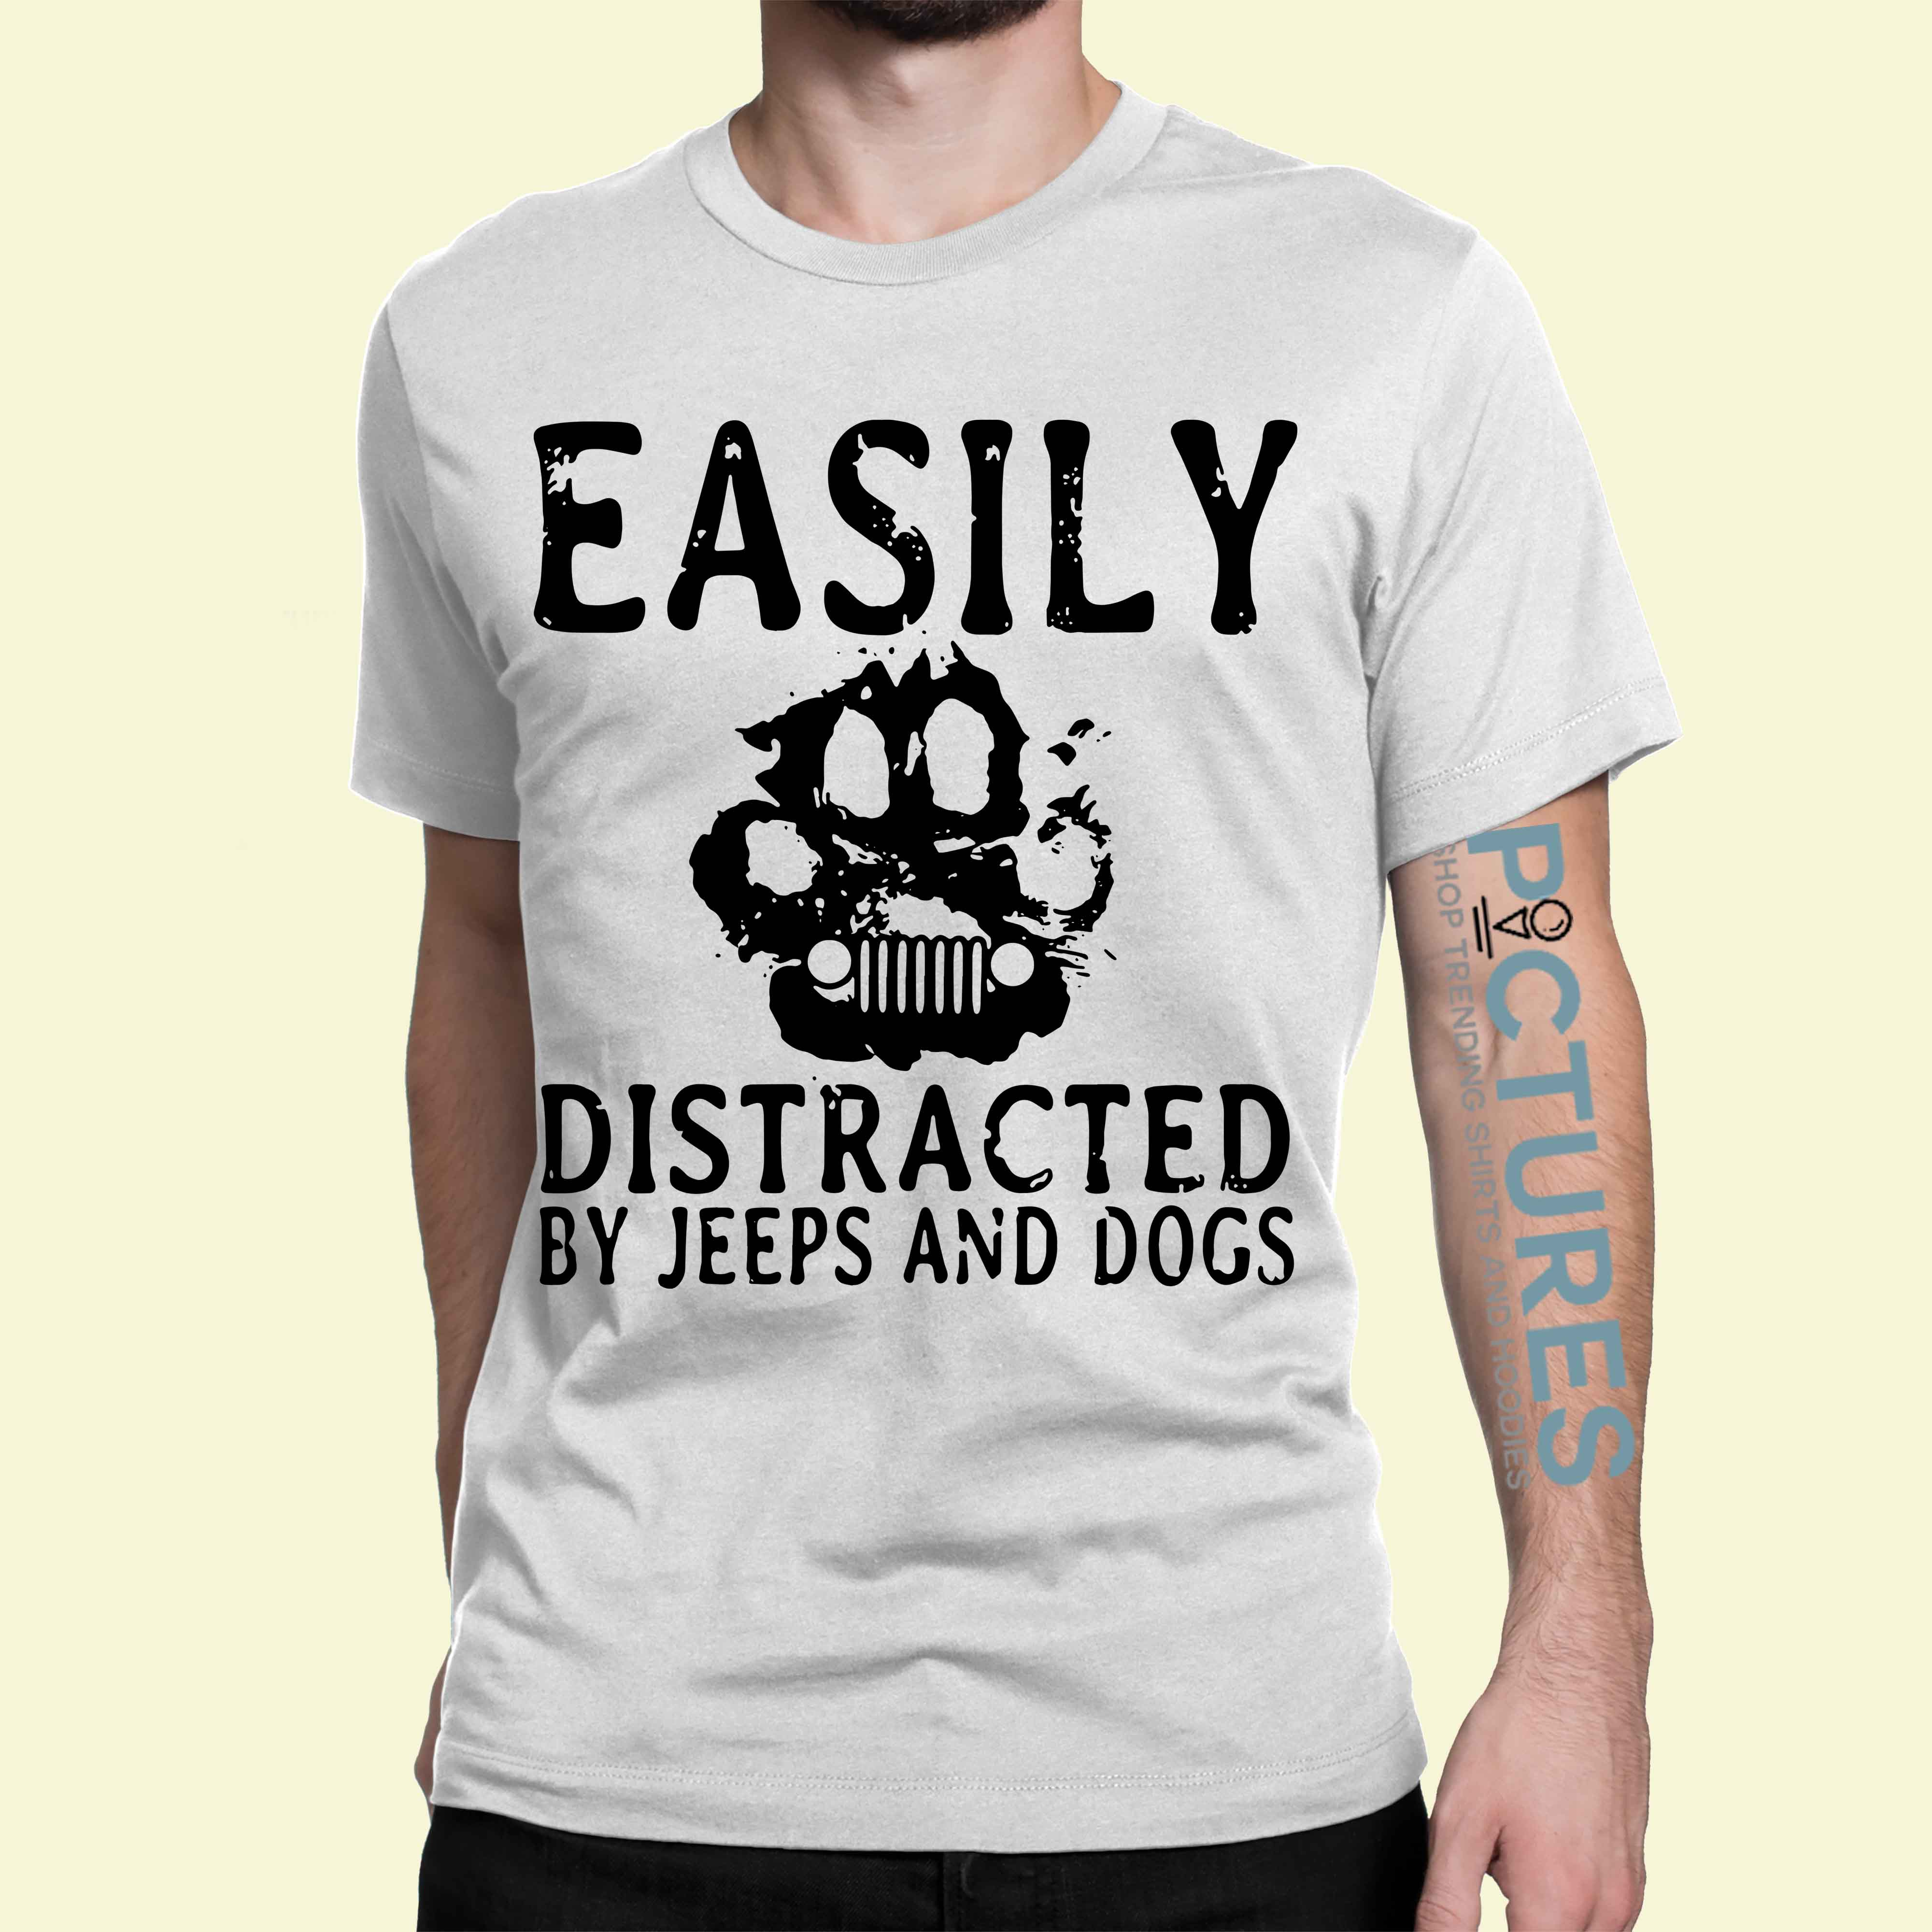 Paw Easily distracted by jeeps and dogs shirt